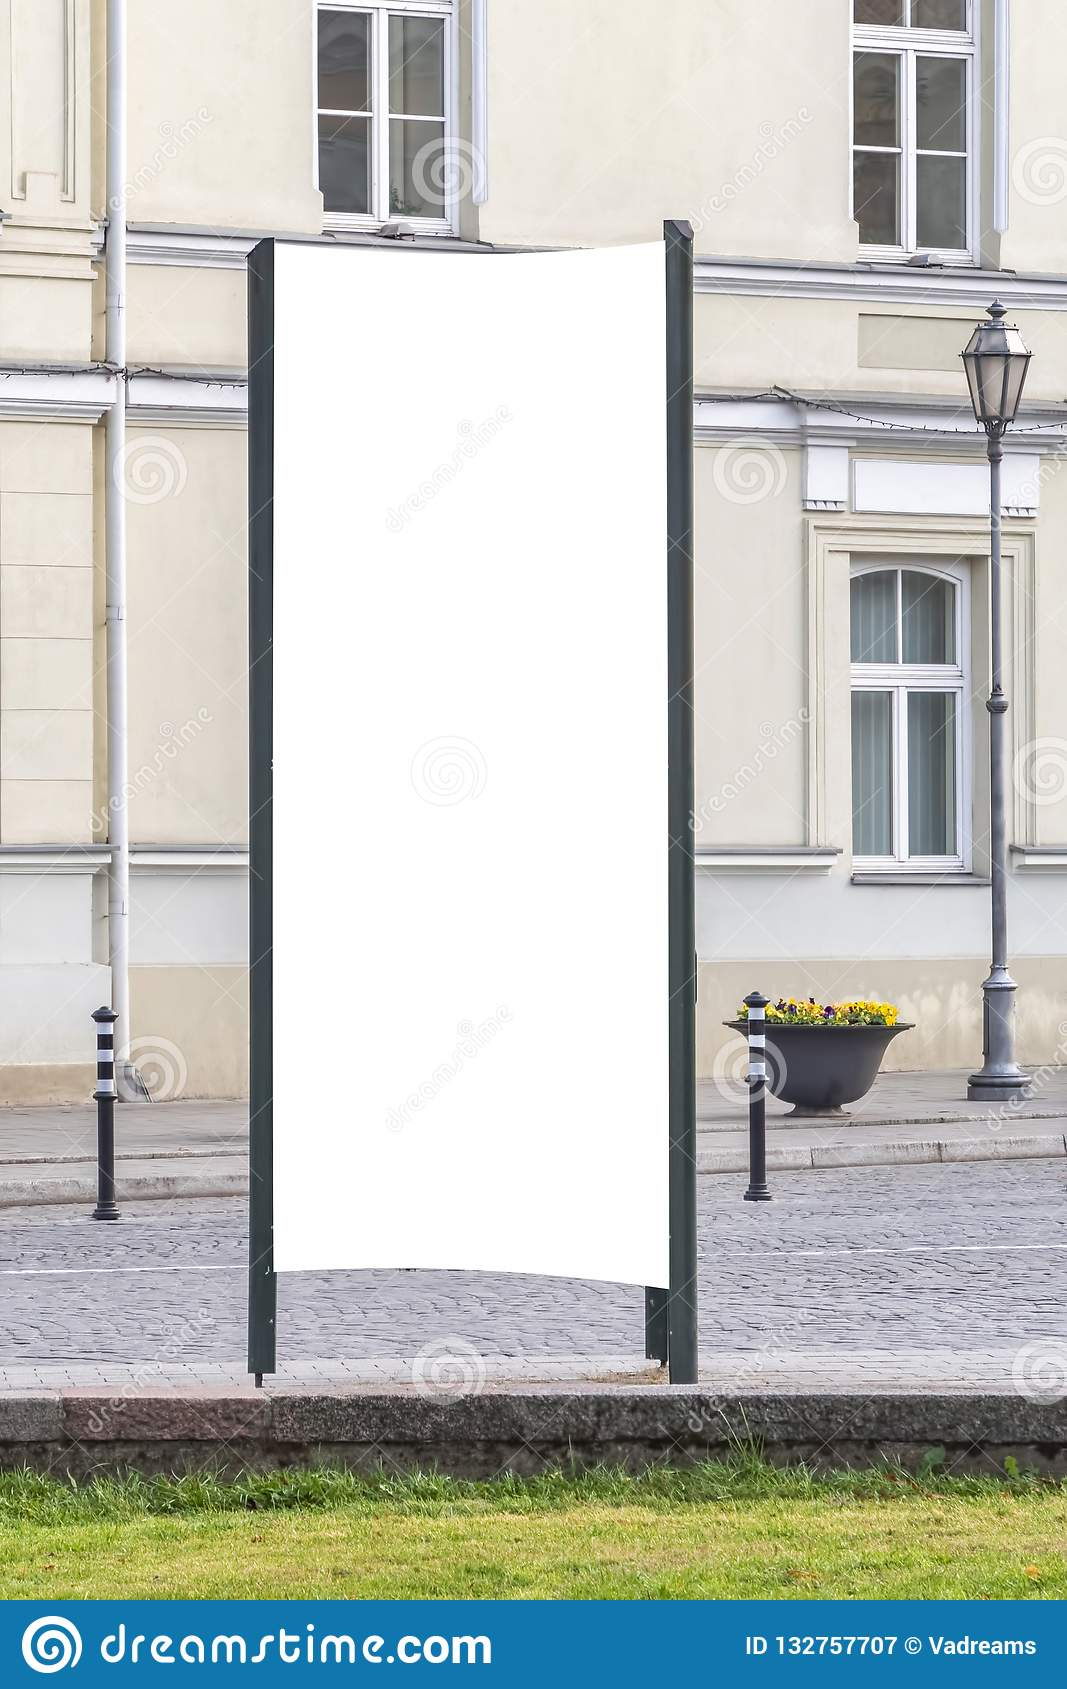 Mock up. Blank outdoor advertising column outdoors, public information board in the street.